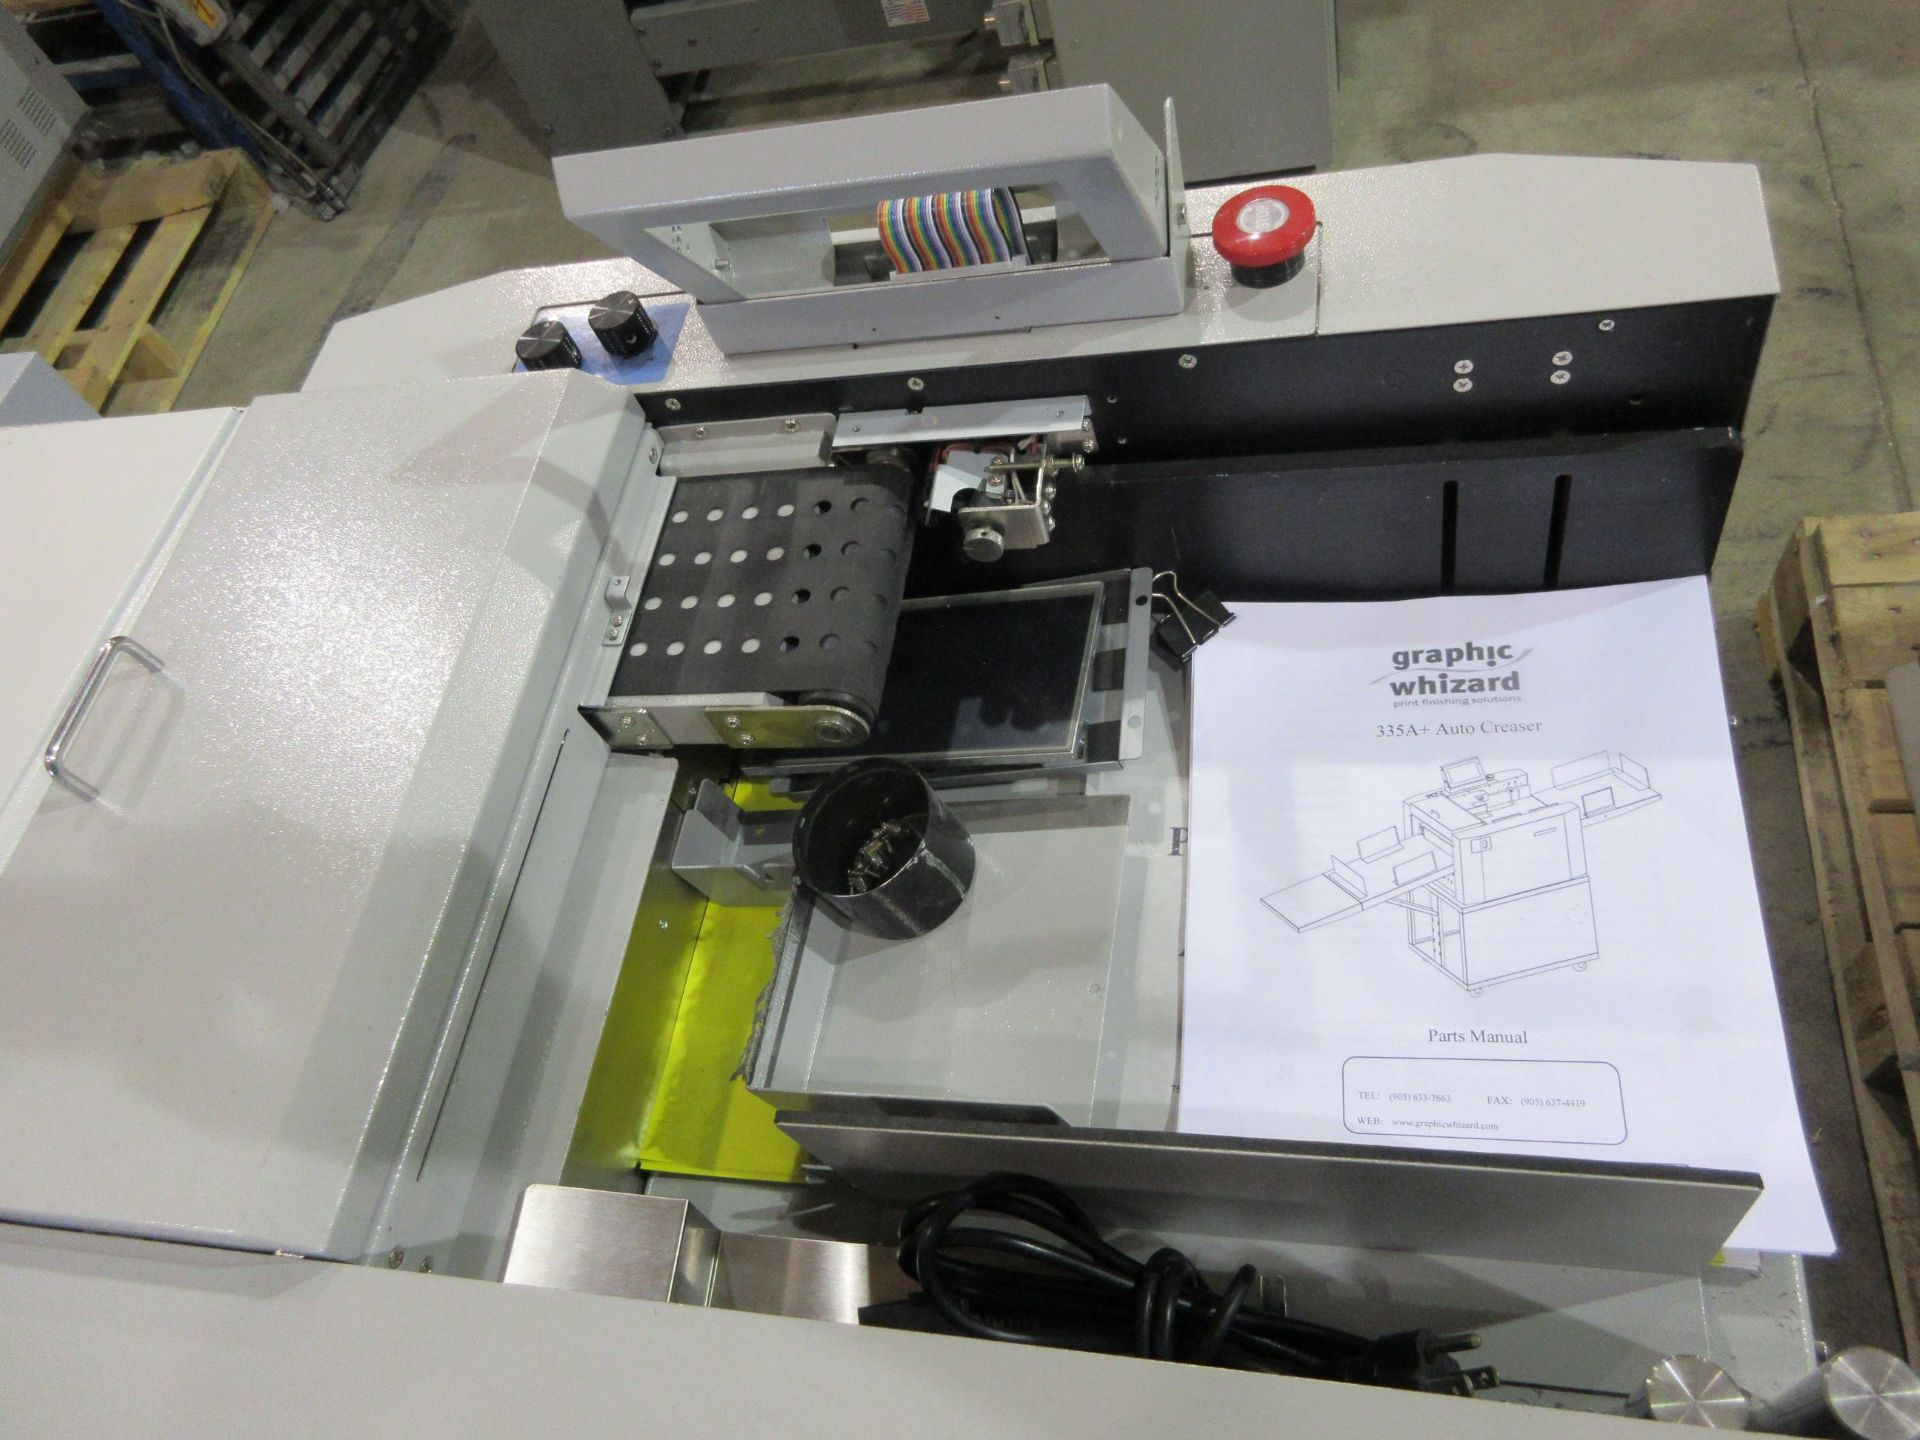 GRAPHIC WHIZARD auto creaser (mod: 335 A+)/KOMPAC automatic dampening system (mod: sp430) (AS IS) - Image 2 of 4